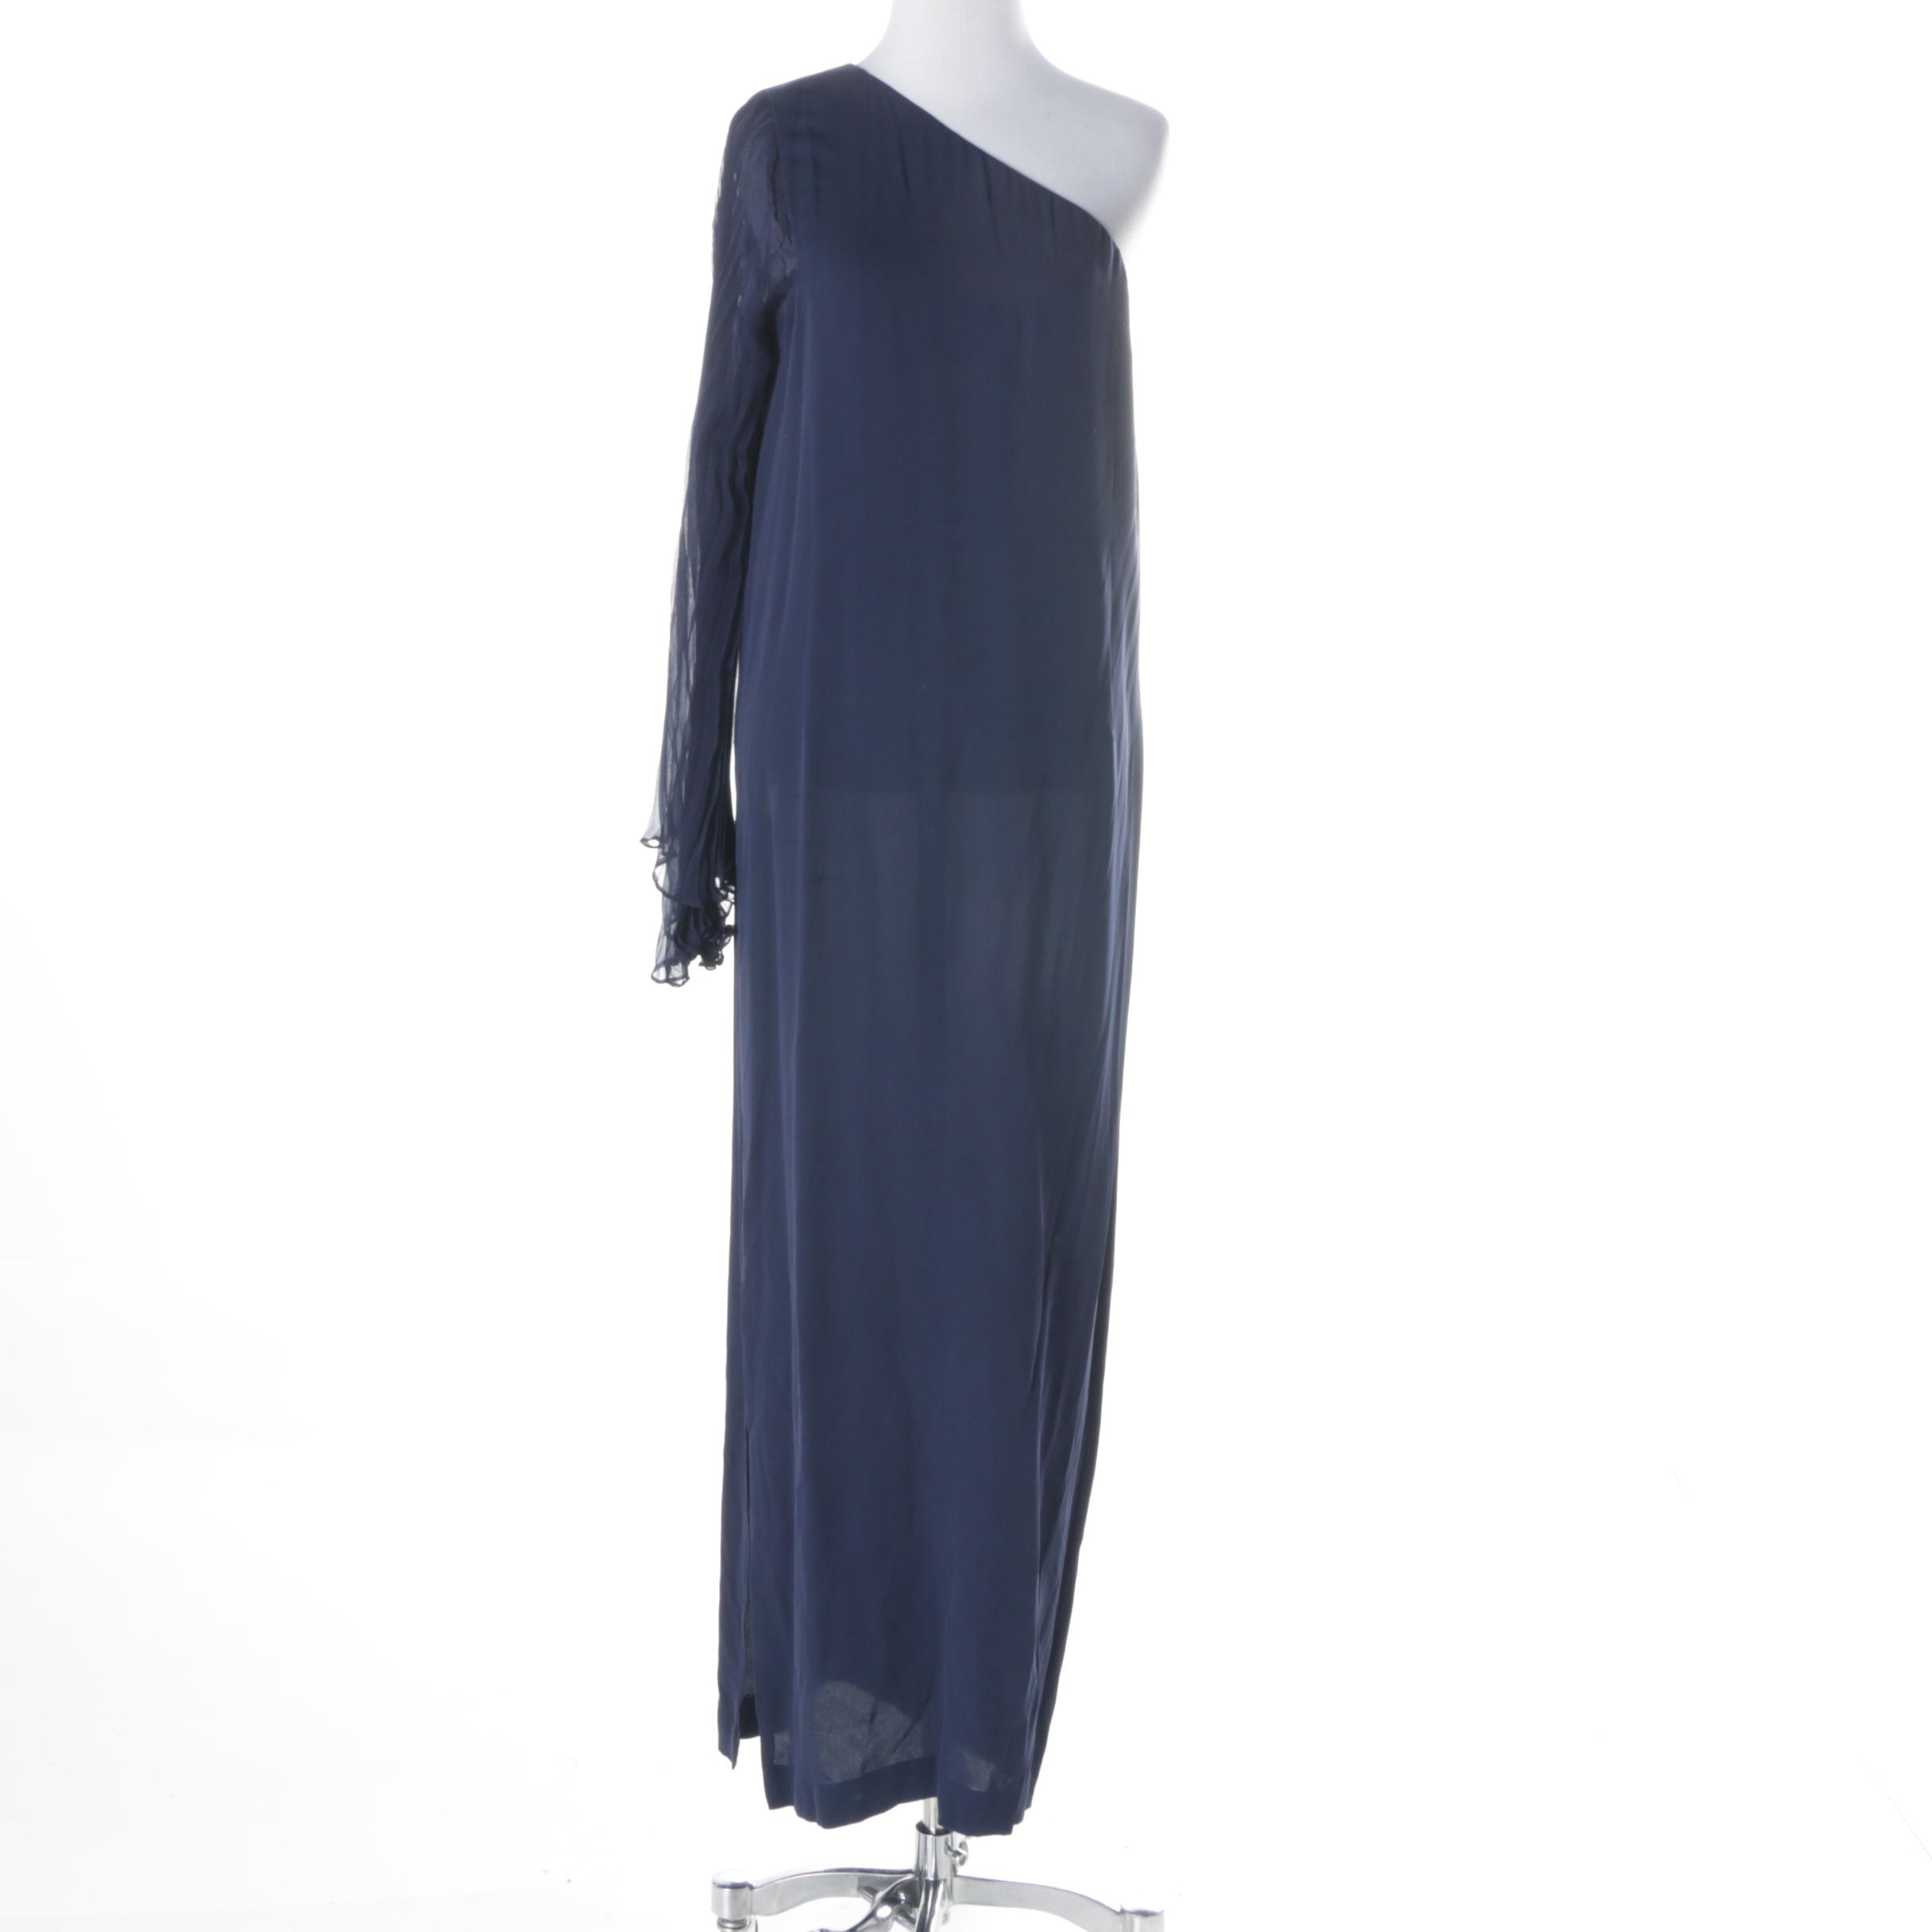 Vintage Cardinali Navy Evening Dress